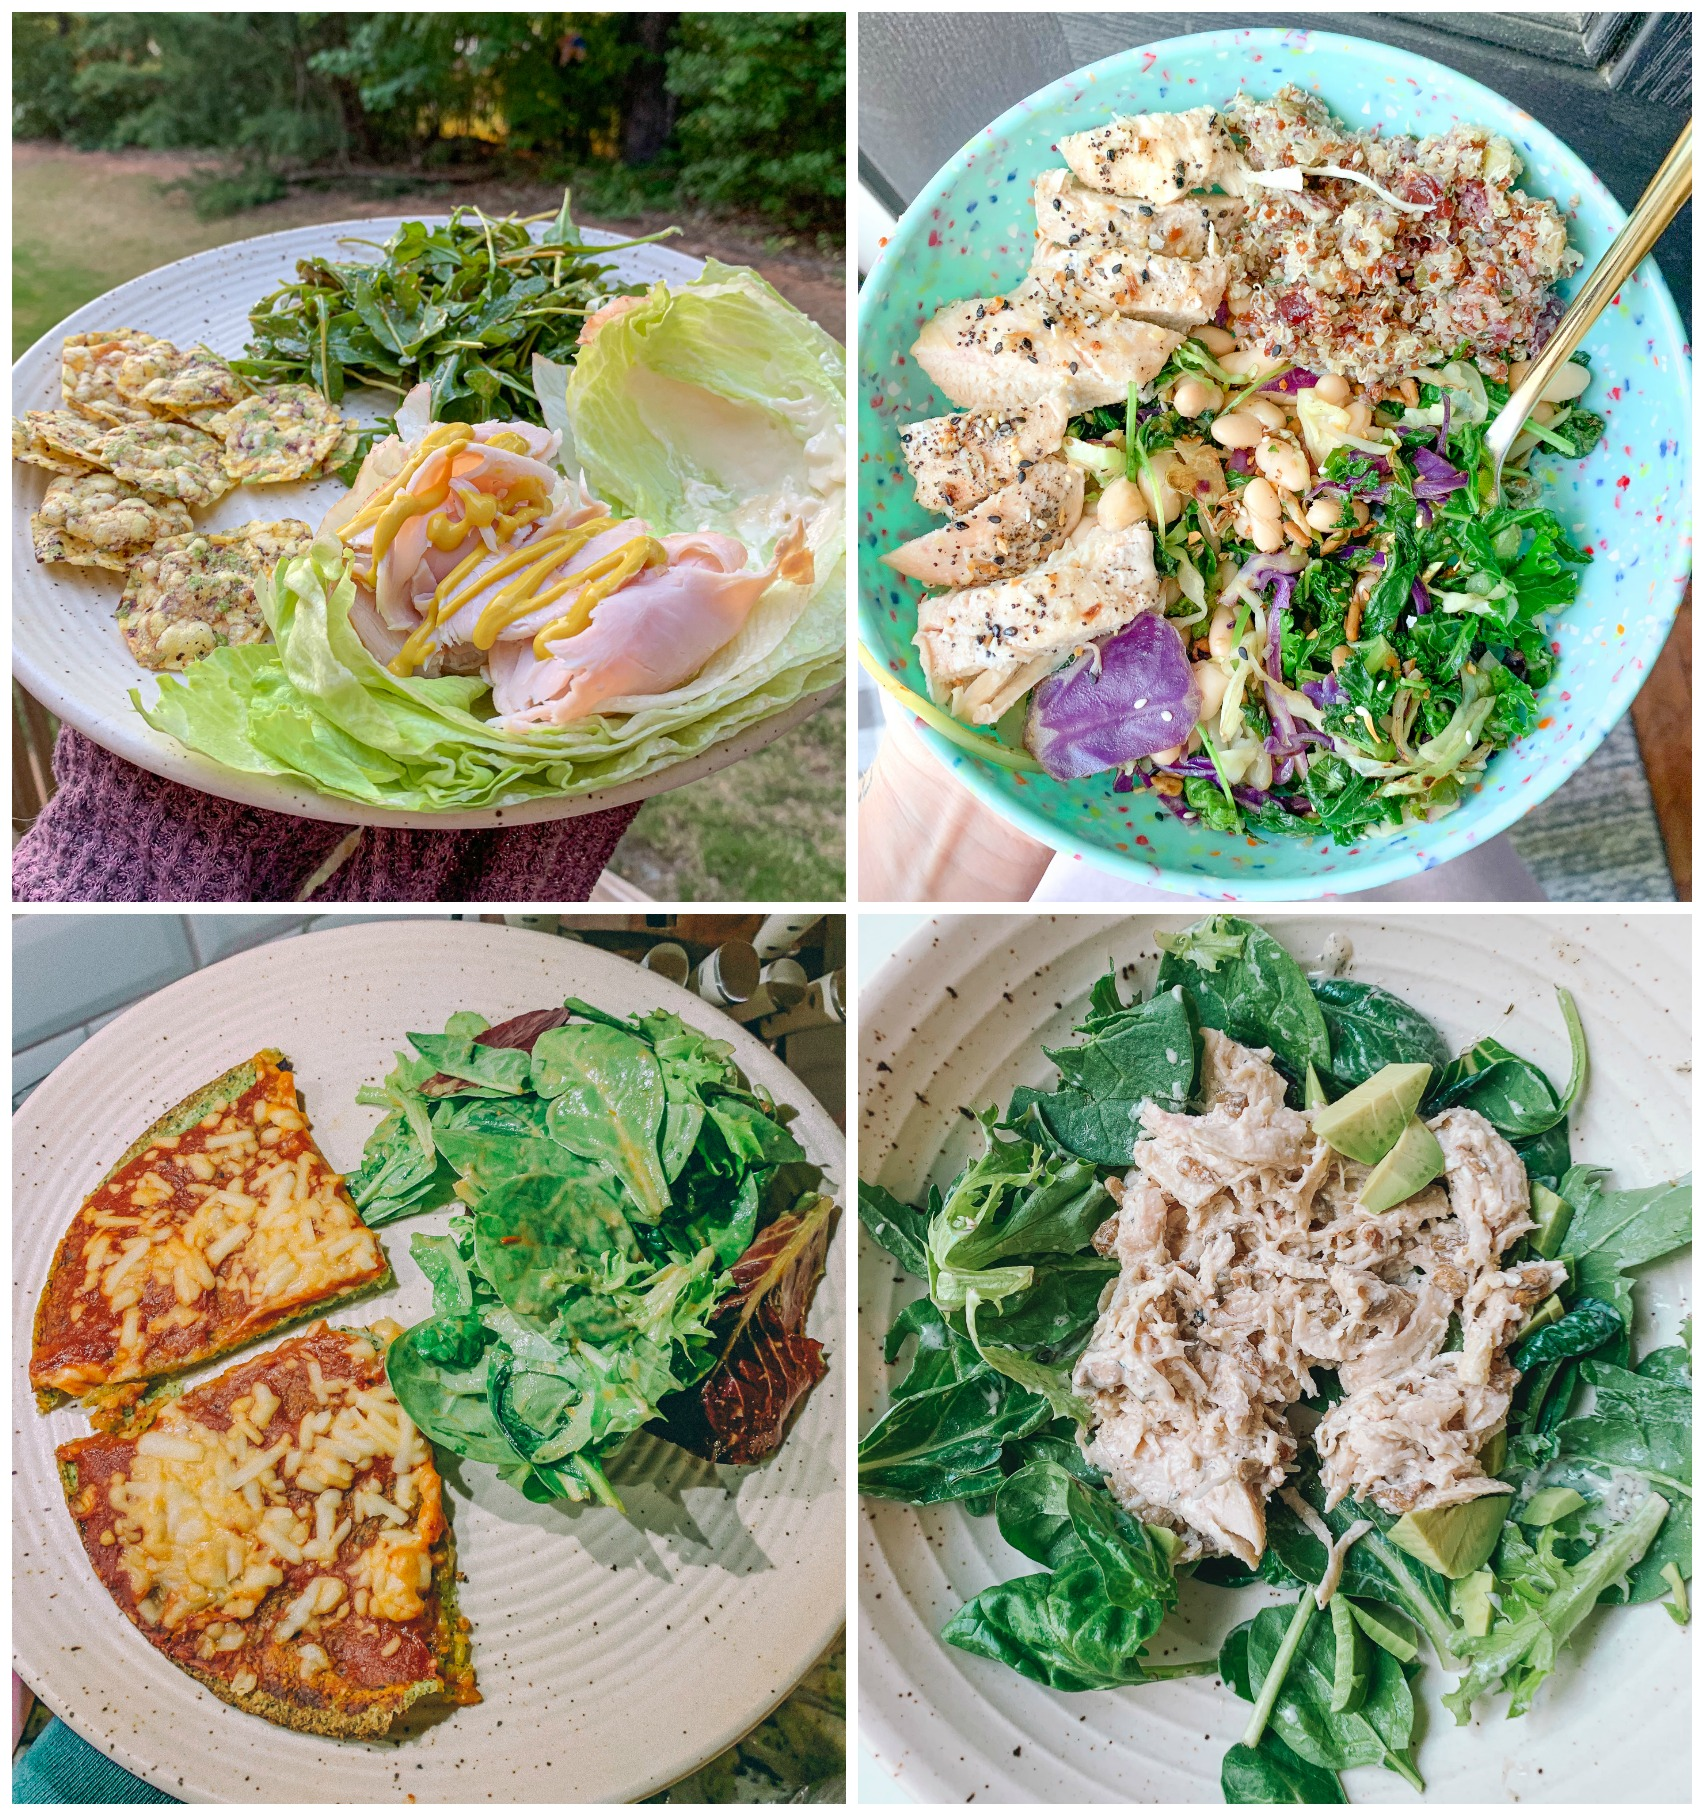 low carb dinner, chicken salad, kale, white beans, low carb, gluten free, quinoa, high protein, lunch, lifestyle lettuce wrap taco night, high protein, low carb, gluten free, healthy, salsa, guacamole, Spanish rice, dairy free yogurtdairy free chicken salad, gluten free dinner lunch salad, arugula, crackers, gluten free, turkey, sprouts, food, easy dinner, lettuce, dairy free, mayo dairy free, vegan, gluten free, broccoli, kale, pizza, vegan cheese, so delicious, dinner night